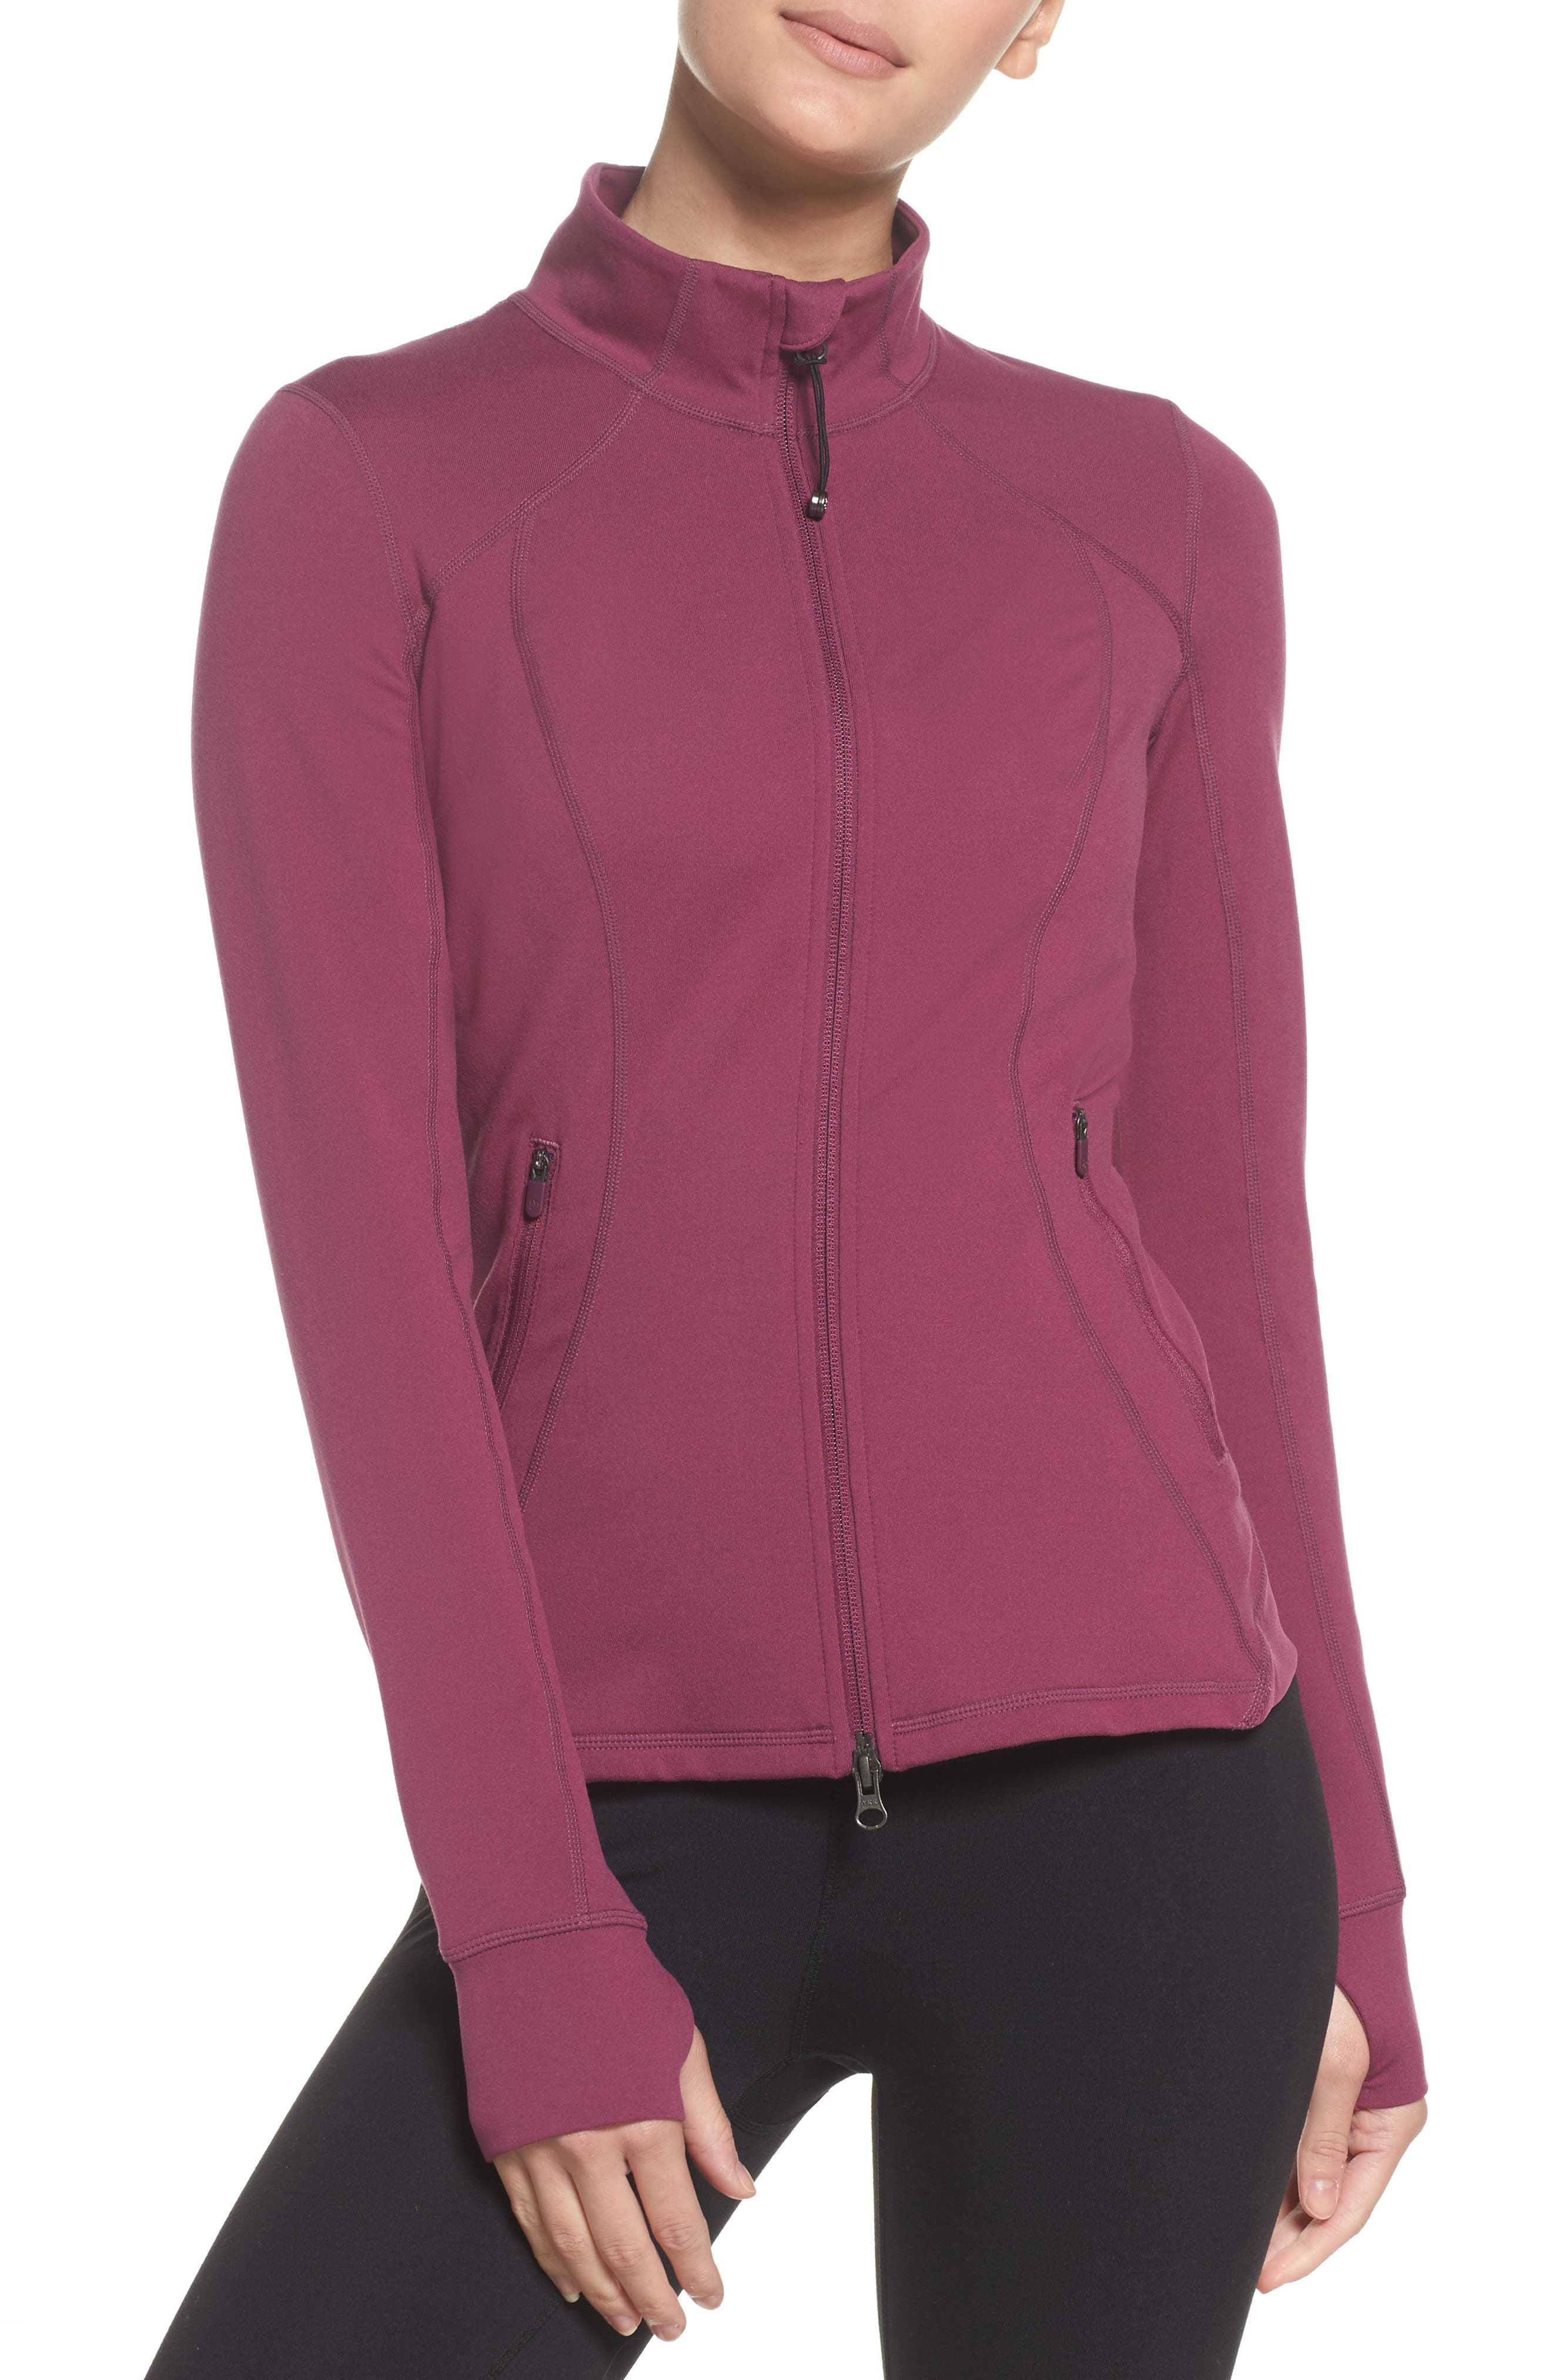 Presence Training Jacket,                         Main,                         color, Purple Cabbage